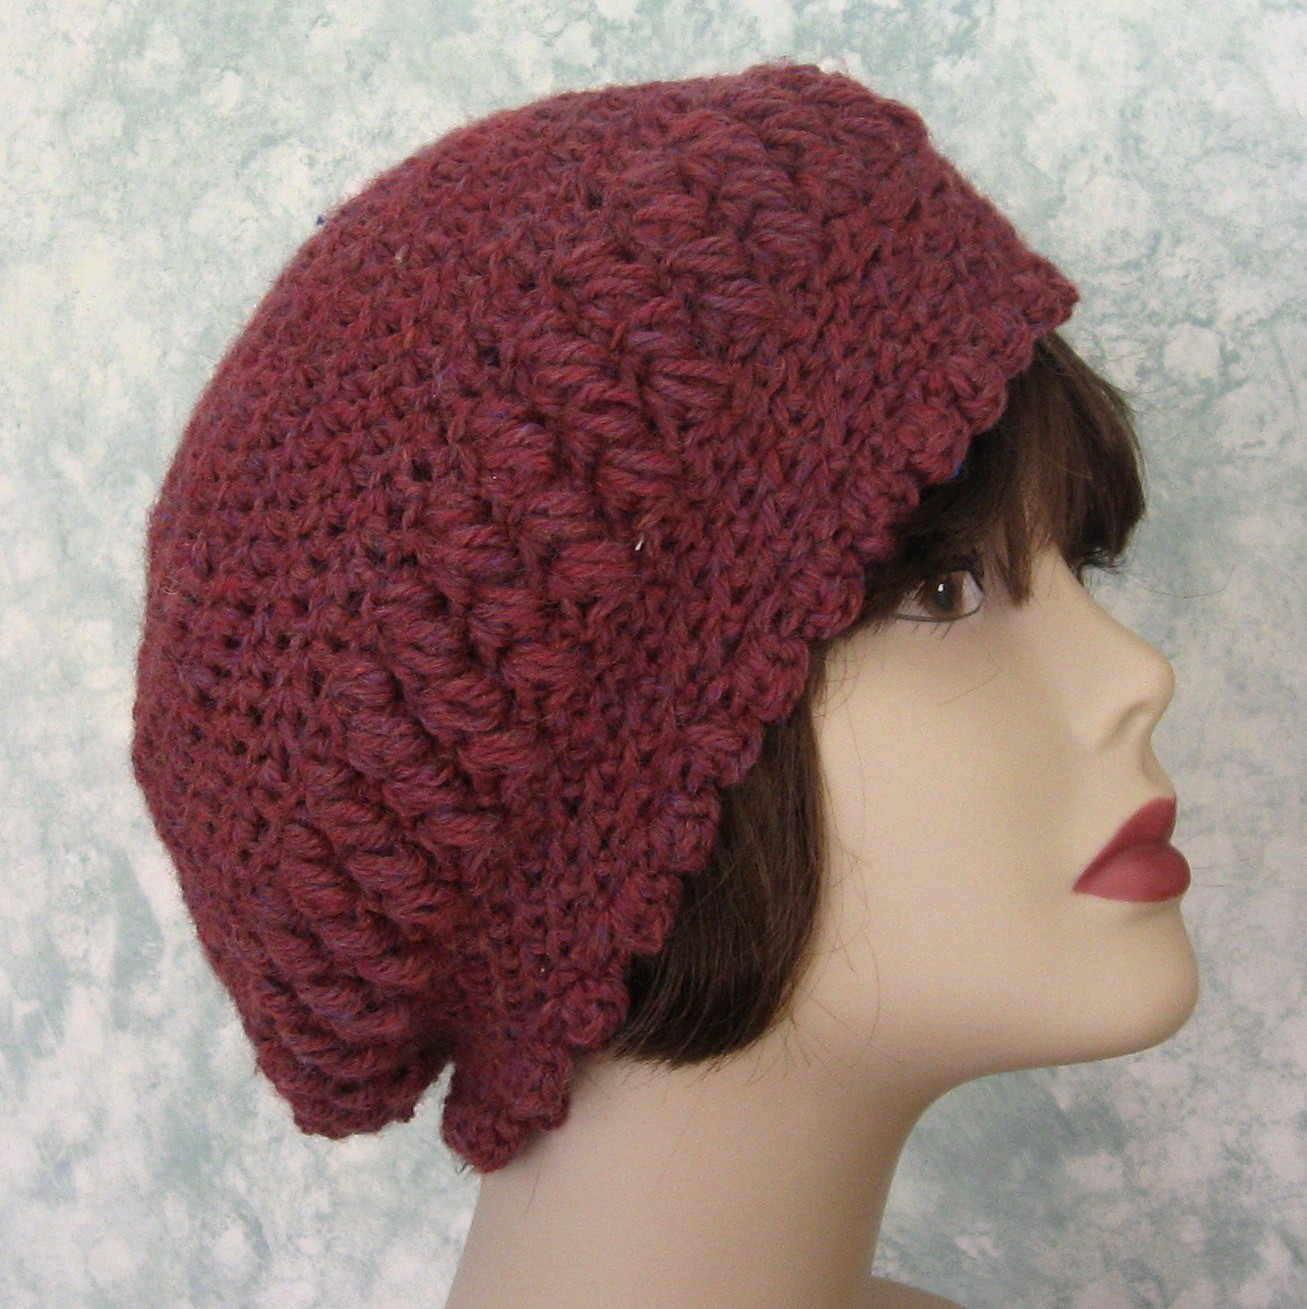 Best Of Slouch Hats – Tag Hats Easy Crochet Beanie Pattern Of Awesome A Variety Of Free Crochet Hat Patterns for Making Hats Easy Crochet Beanie Pattern